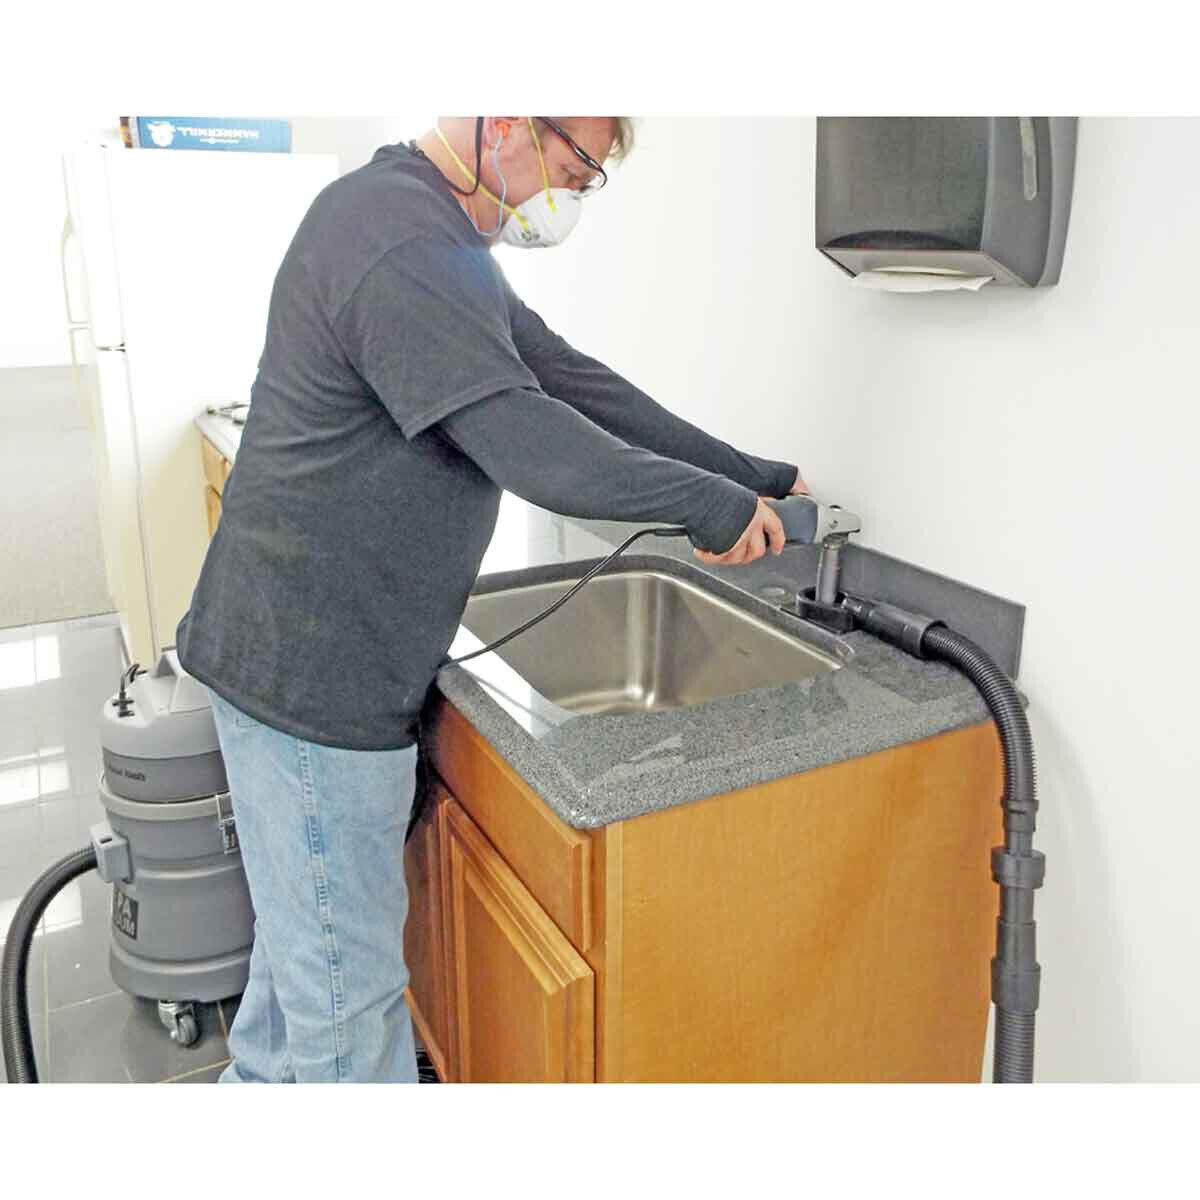 Wet Drilling Sink Holes with EcoGuard CD